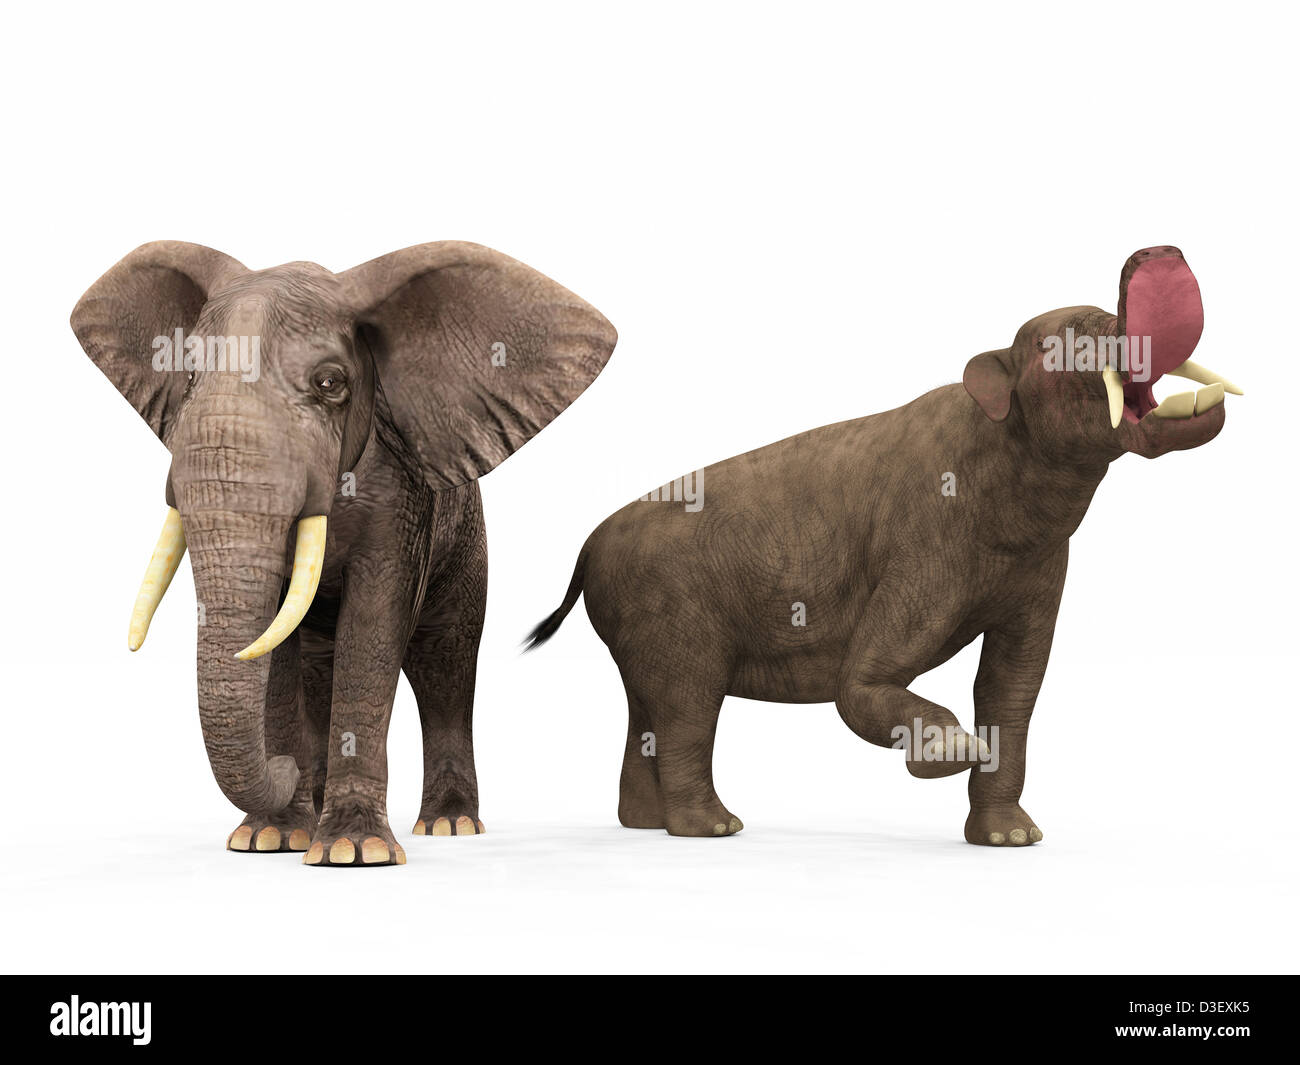 An adult Platybelodon compared to a modern adult African Elephant. - Stock Image